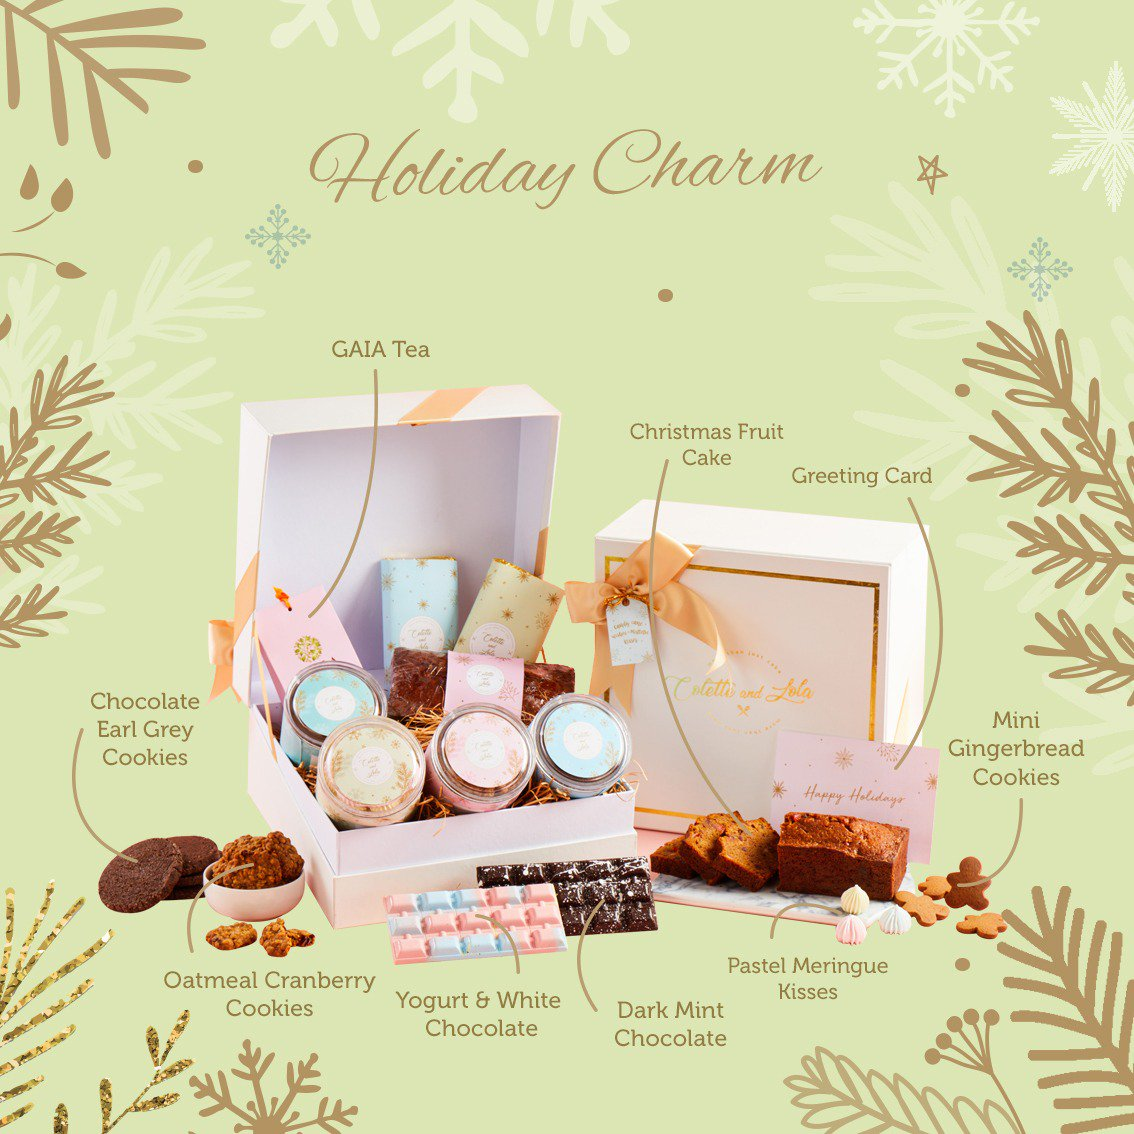 There are 5 of our Christmas Cookies inside Holiday Charm hamper that we cracked hacks for you to try. What are those cookies?